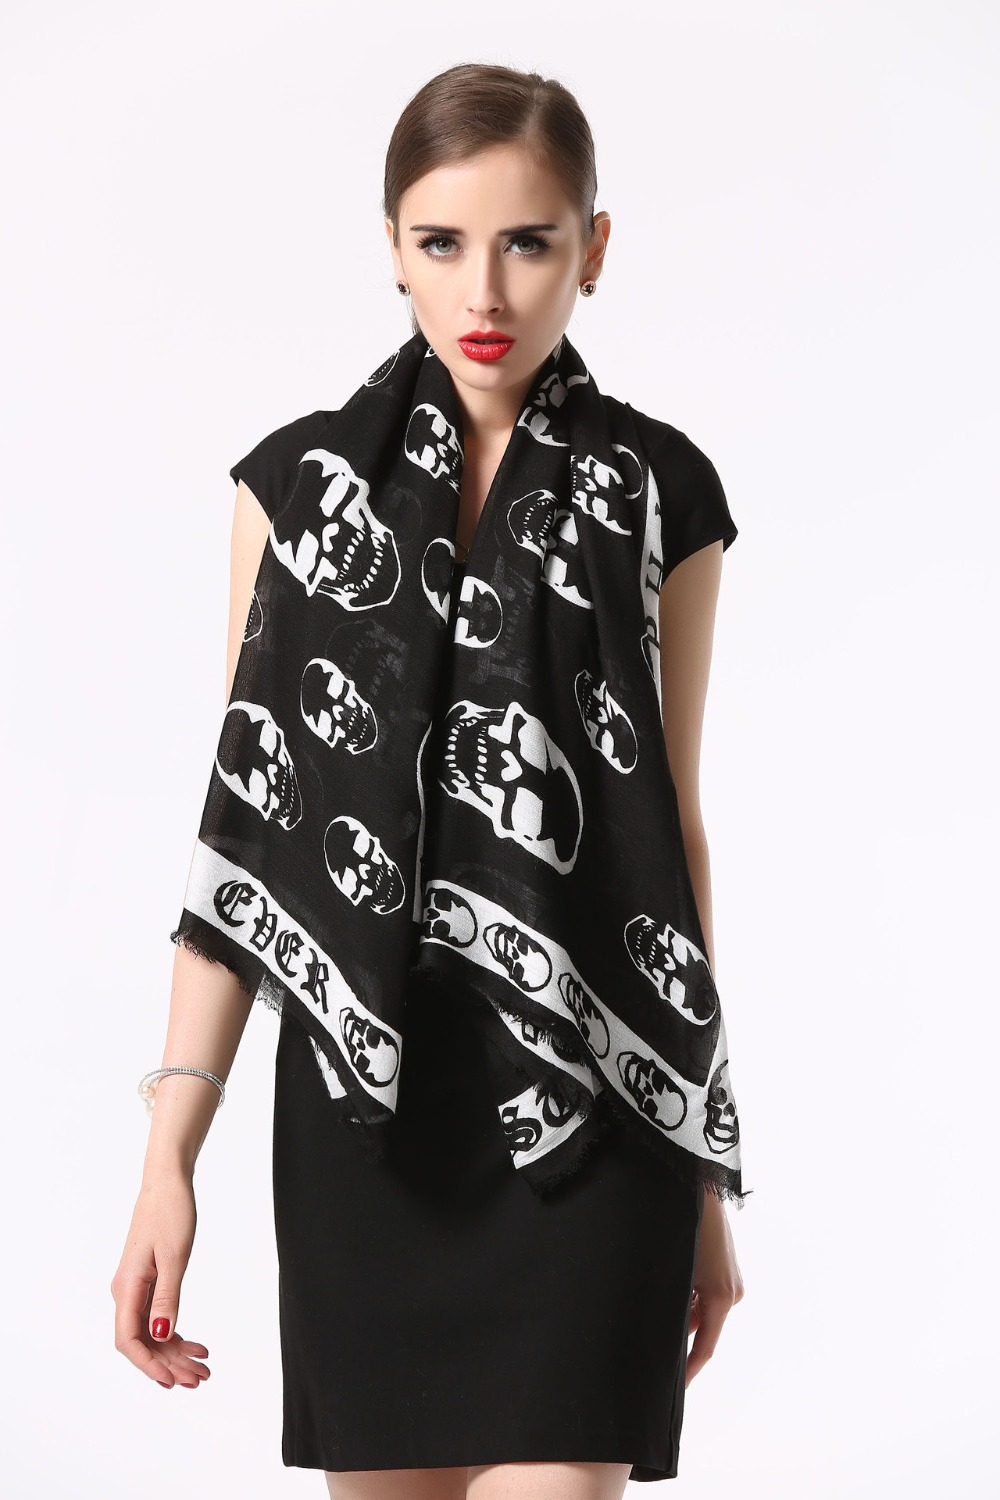 2015 New arrival Fashion Desigual famous brand scarf women black cotton scarves Skull shawl Autumn Winter Wrap Scarf woman(China (Mainland))